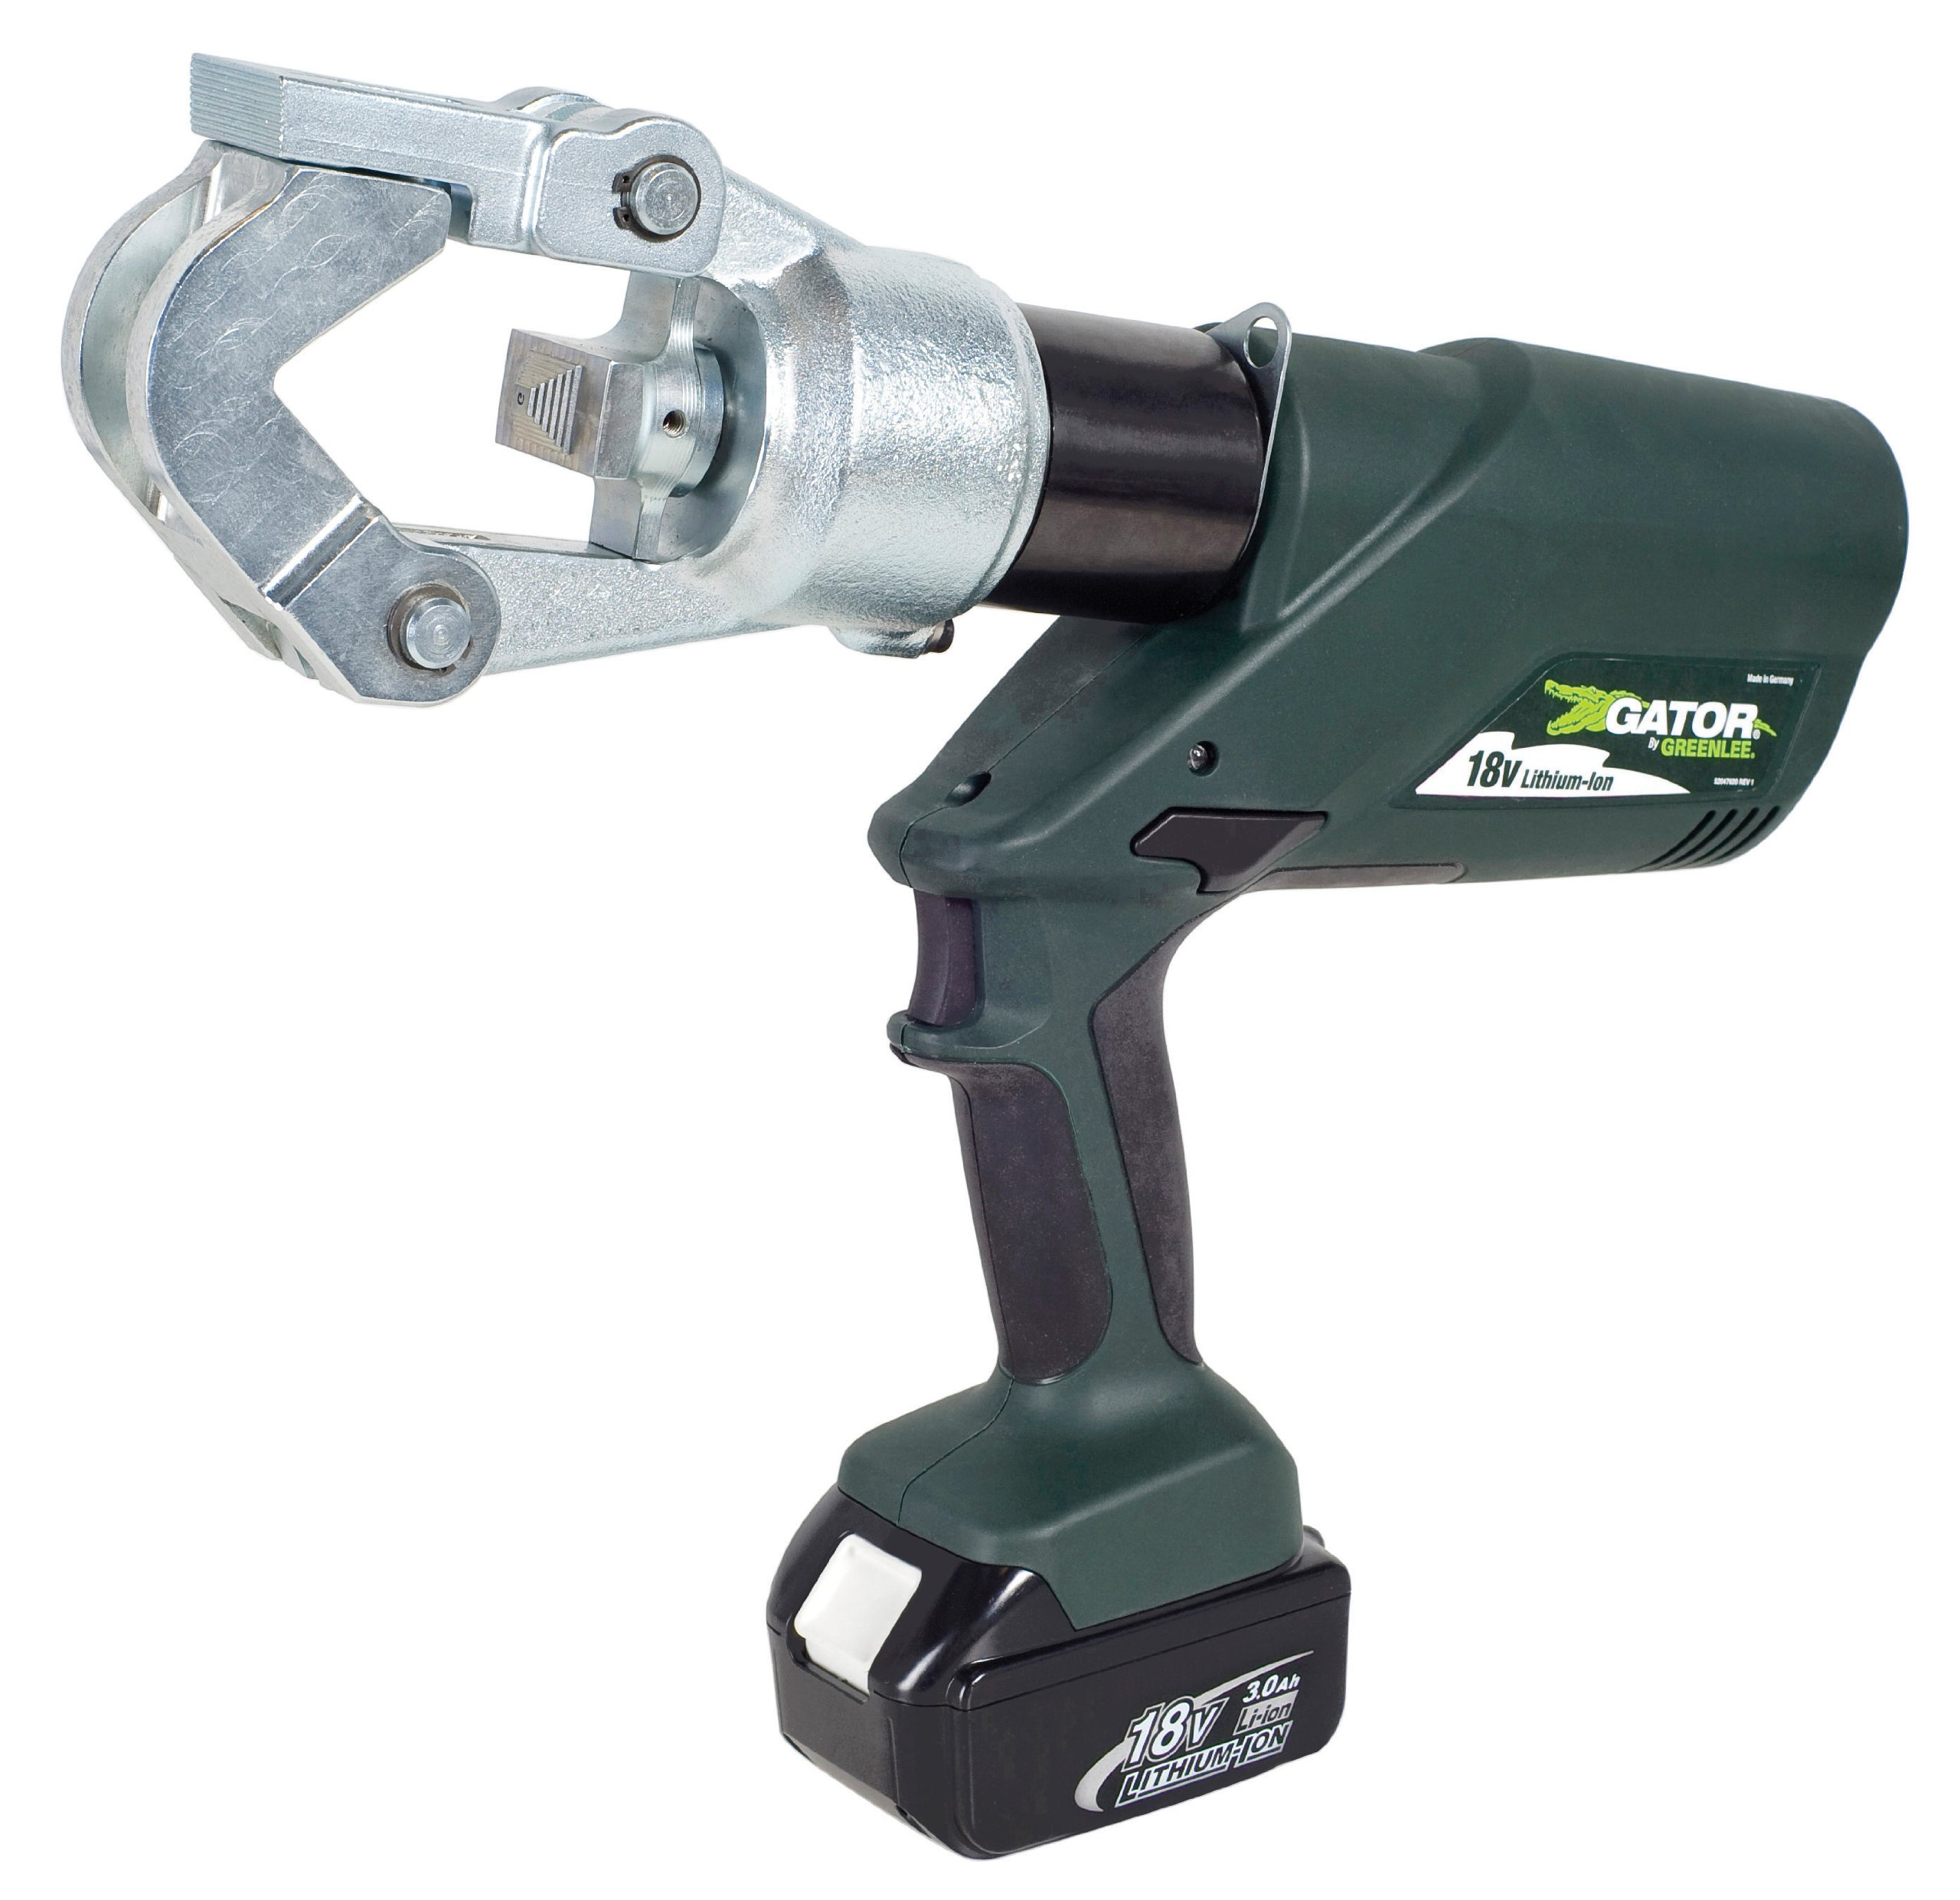 Greenlee EK12IDL11 Gator Battery-Powered 12 Ton Dieless Crimping Tool with 120-Volt Charger